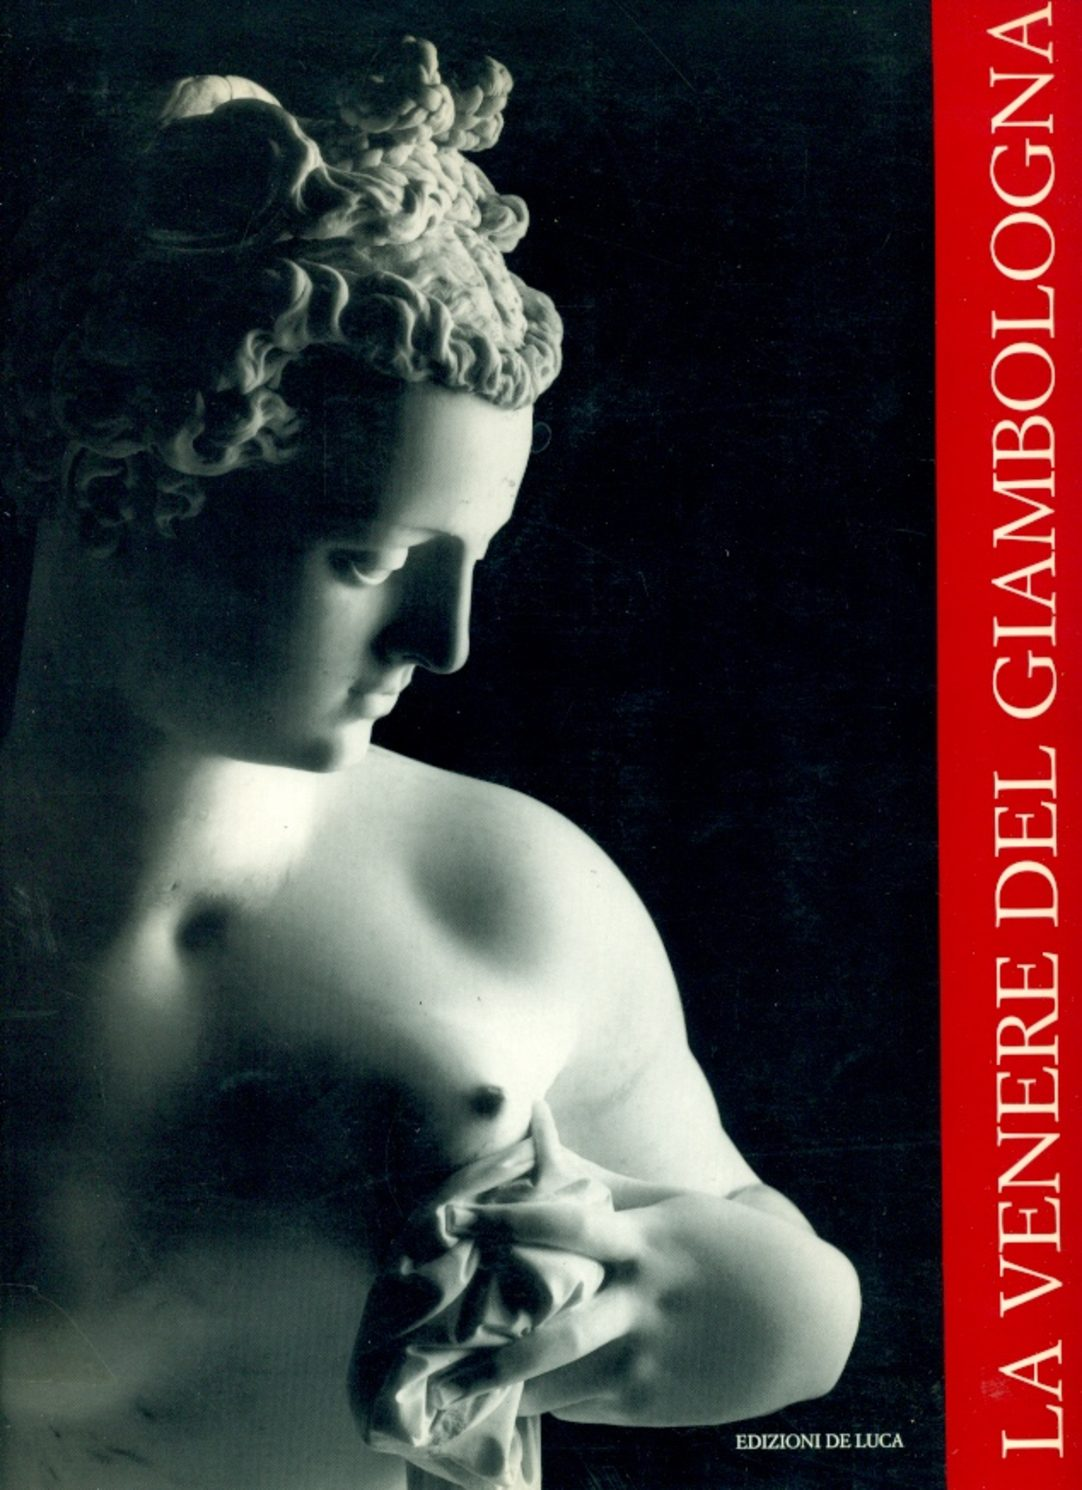 https://cbccoop.it/app/uploads/2017/06/COP-Venere-Giambologna-pdf.jpg